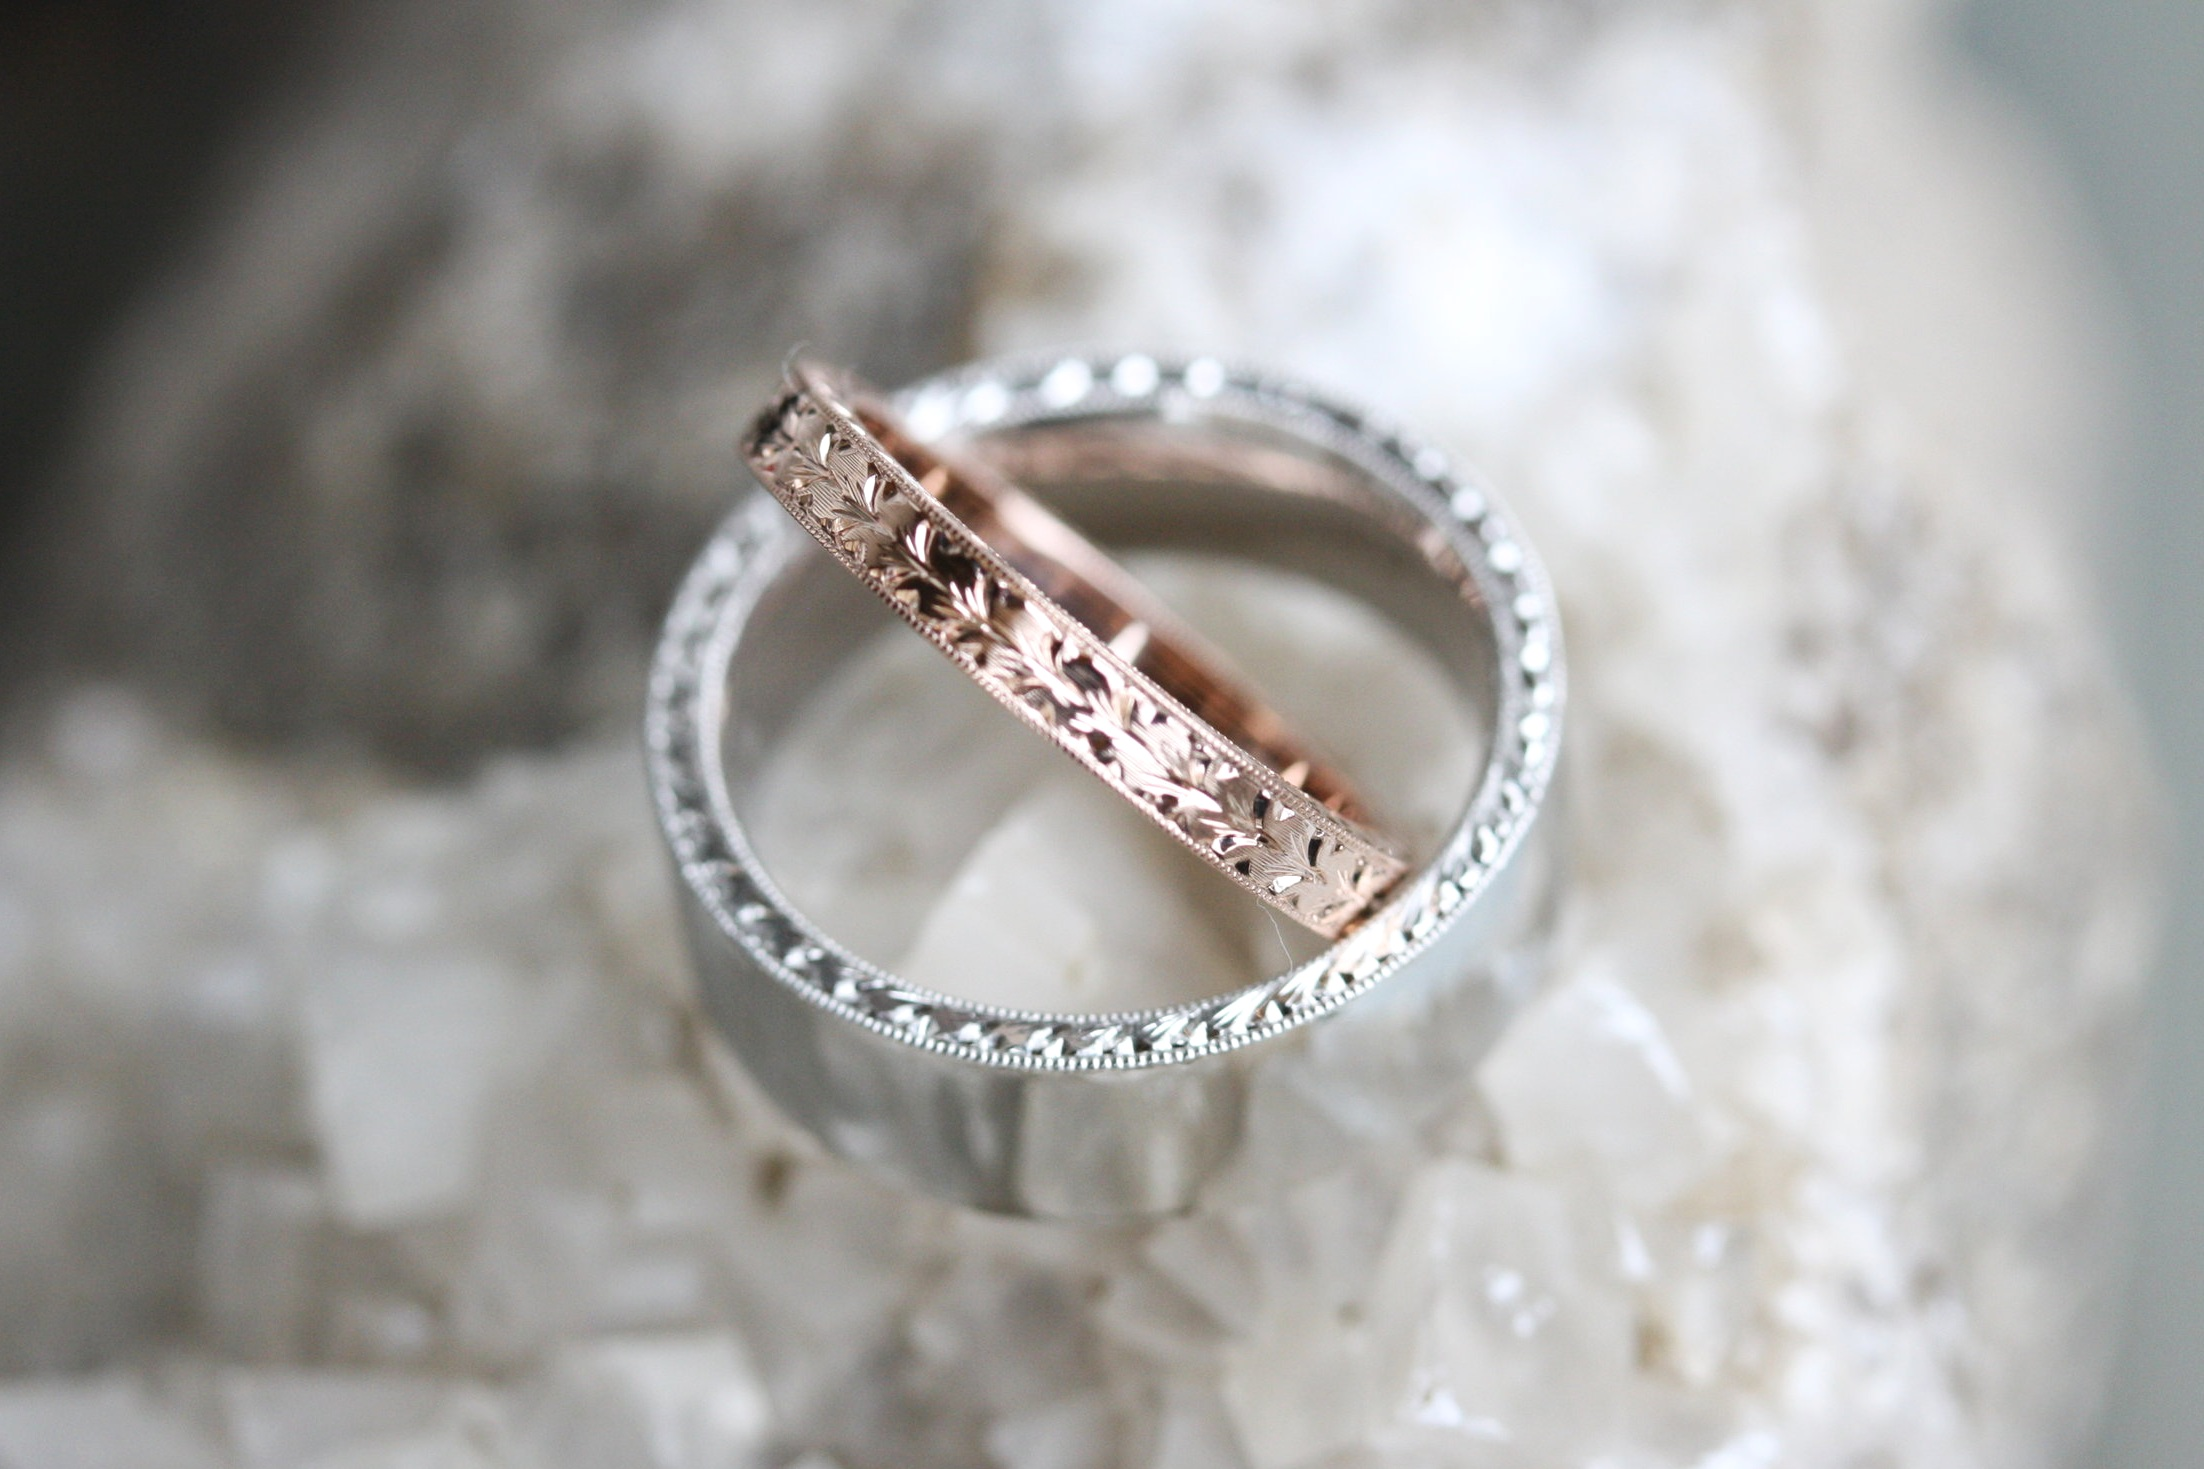 Hank Miller and Courtney Draiser Custom Wedding Bands 14kt White Gold and 14kt Rose Gold Engraved_22.JPG